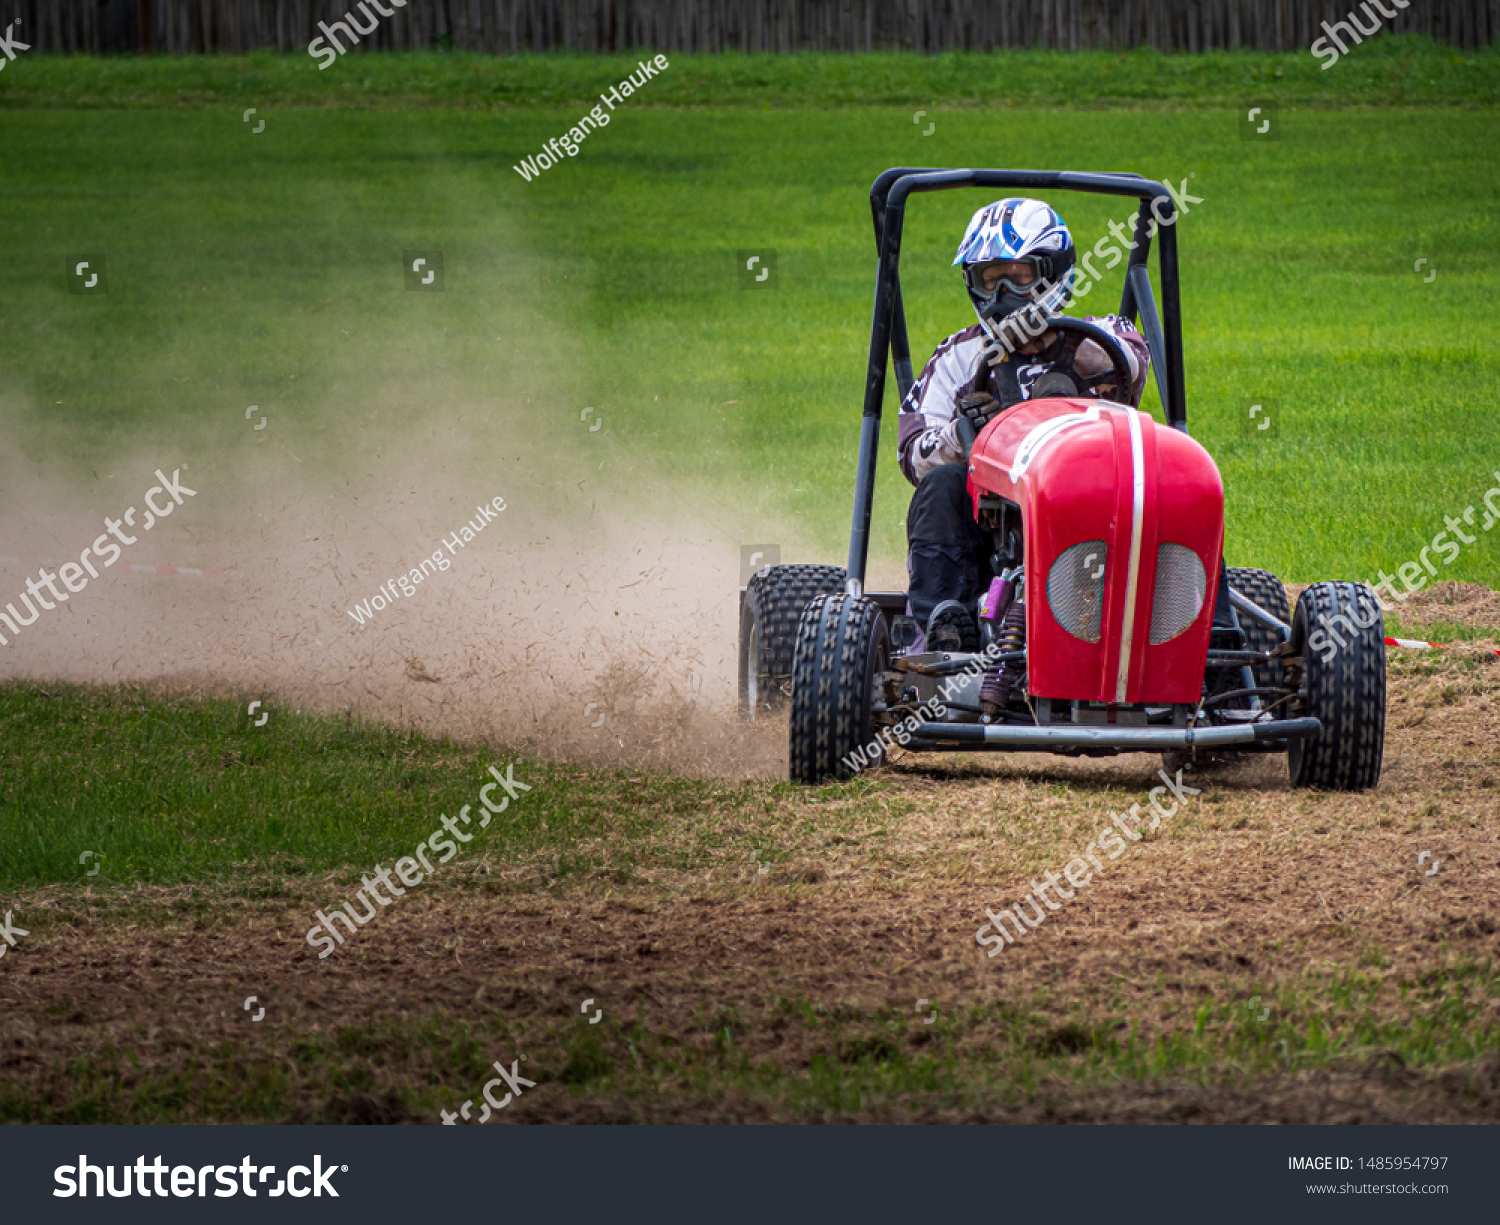 Lawn Mower Race Tuned Engines Which Stock Photo Edit Now 1485954797